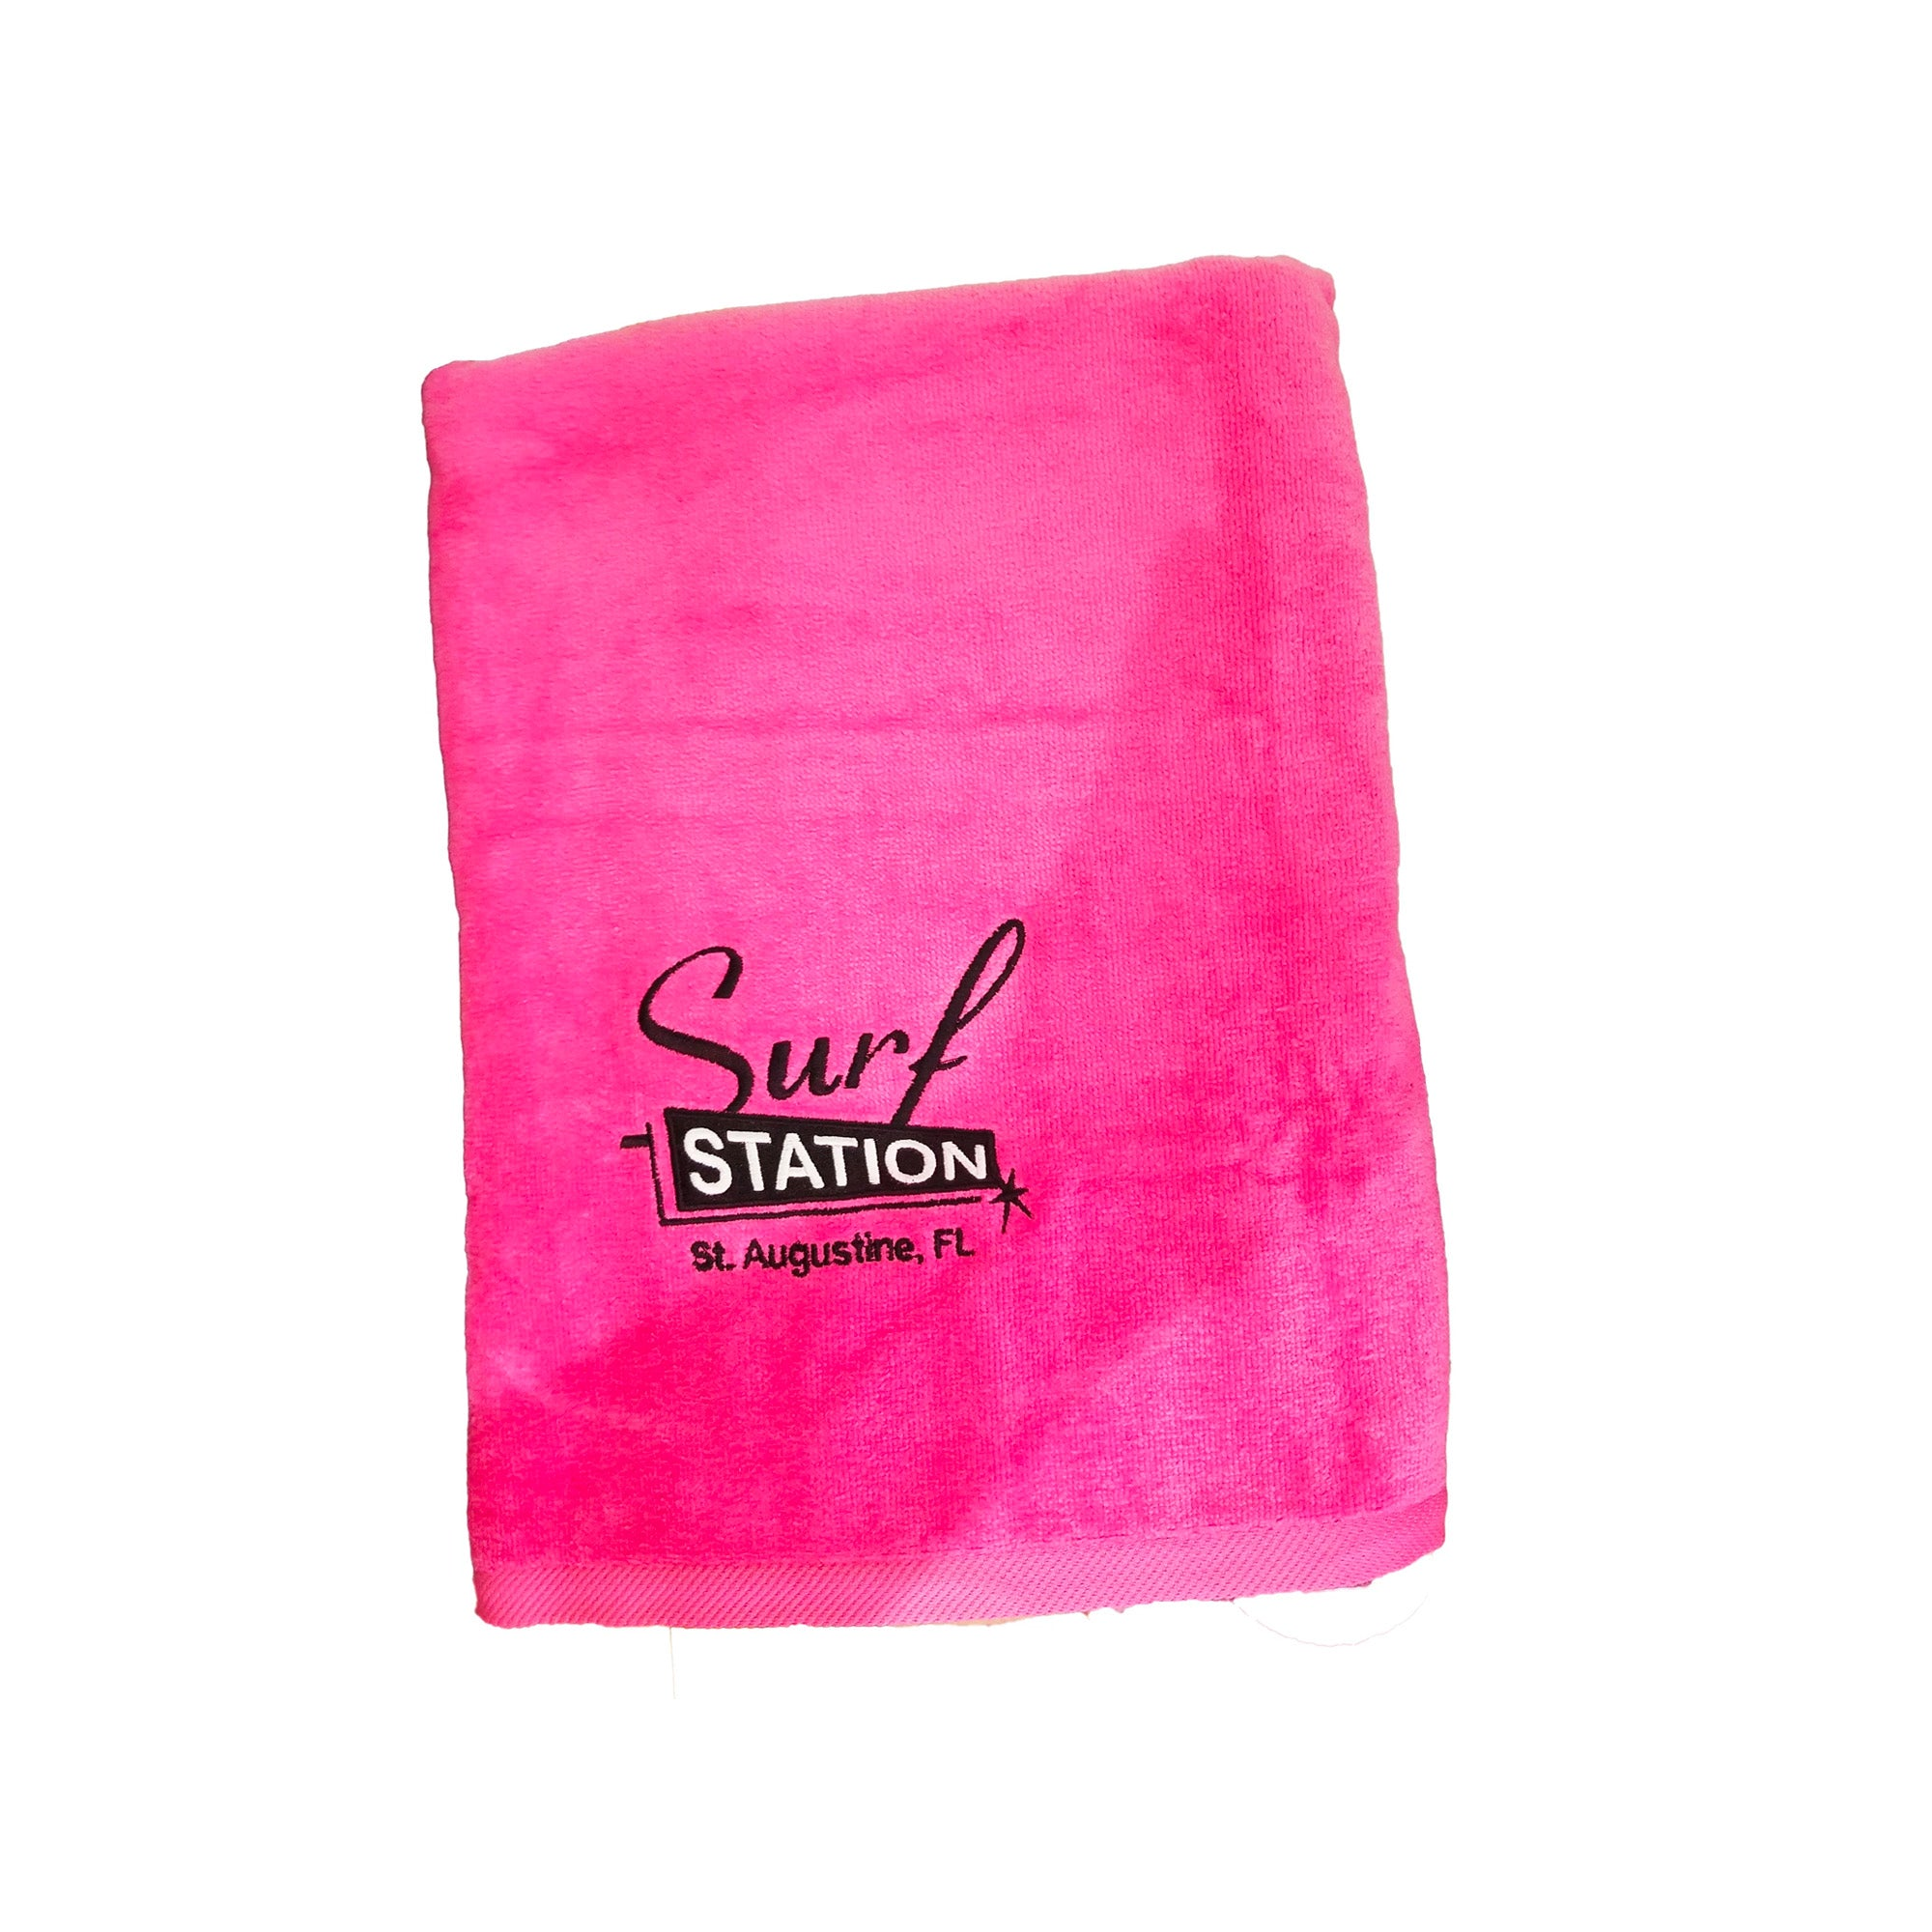 Surf Station Classic Colors Towel - Pink